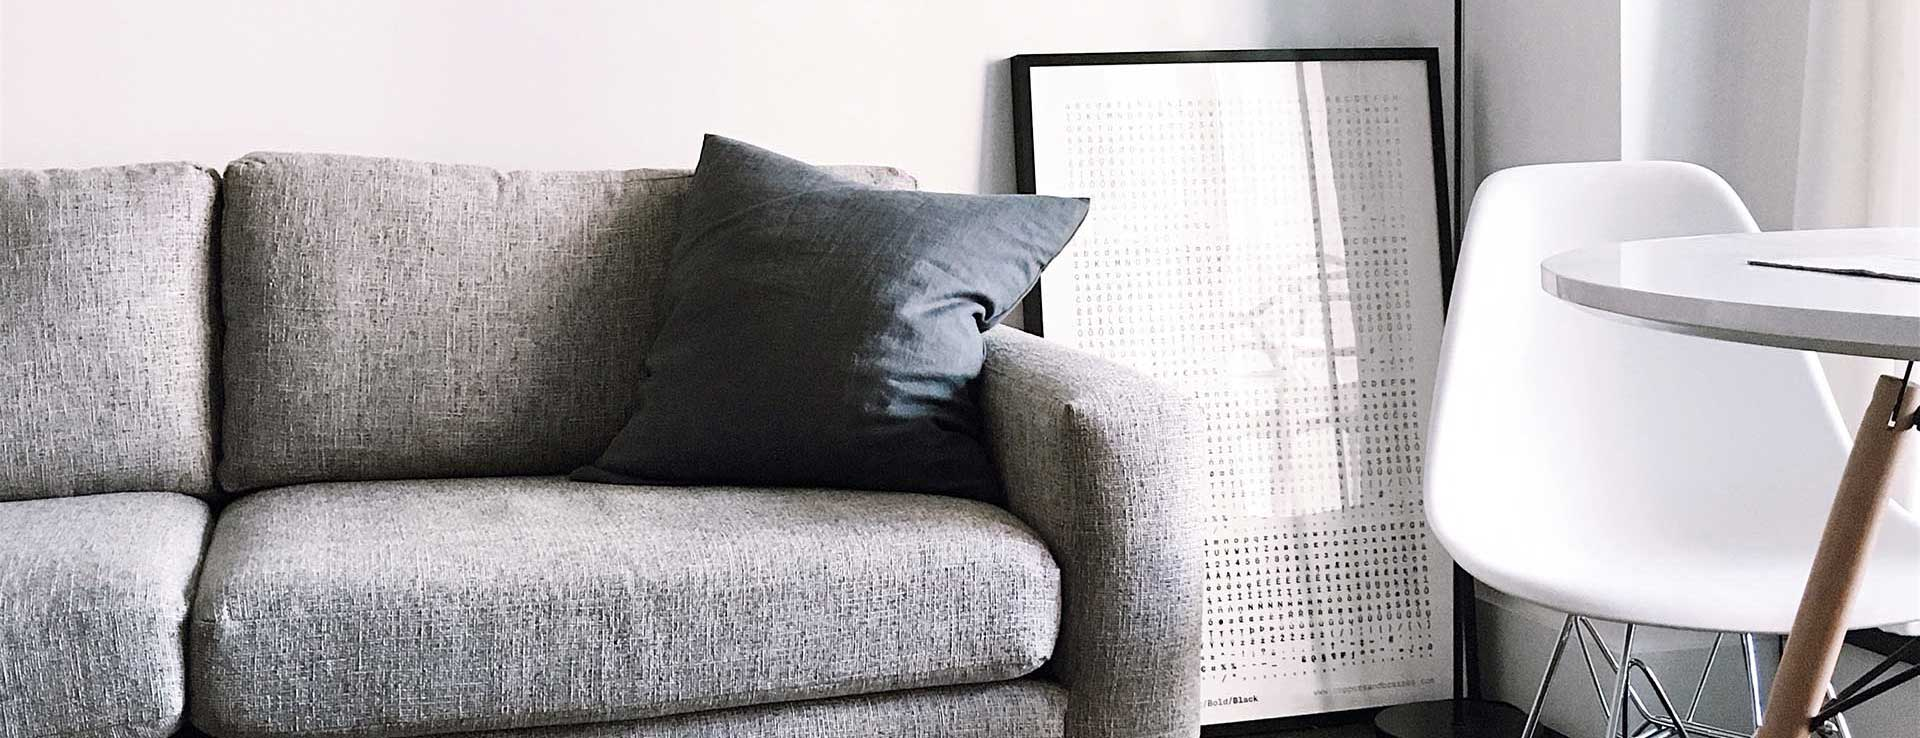 grey couch framed artwork chair and table in room